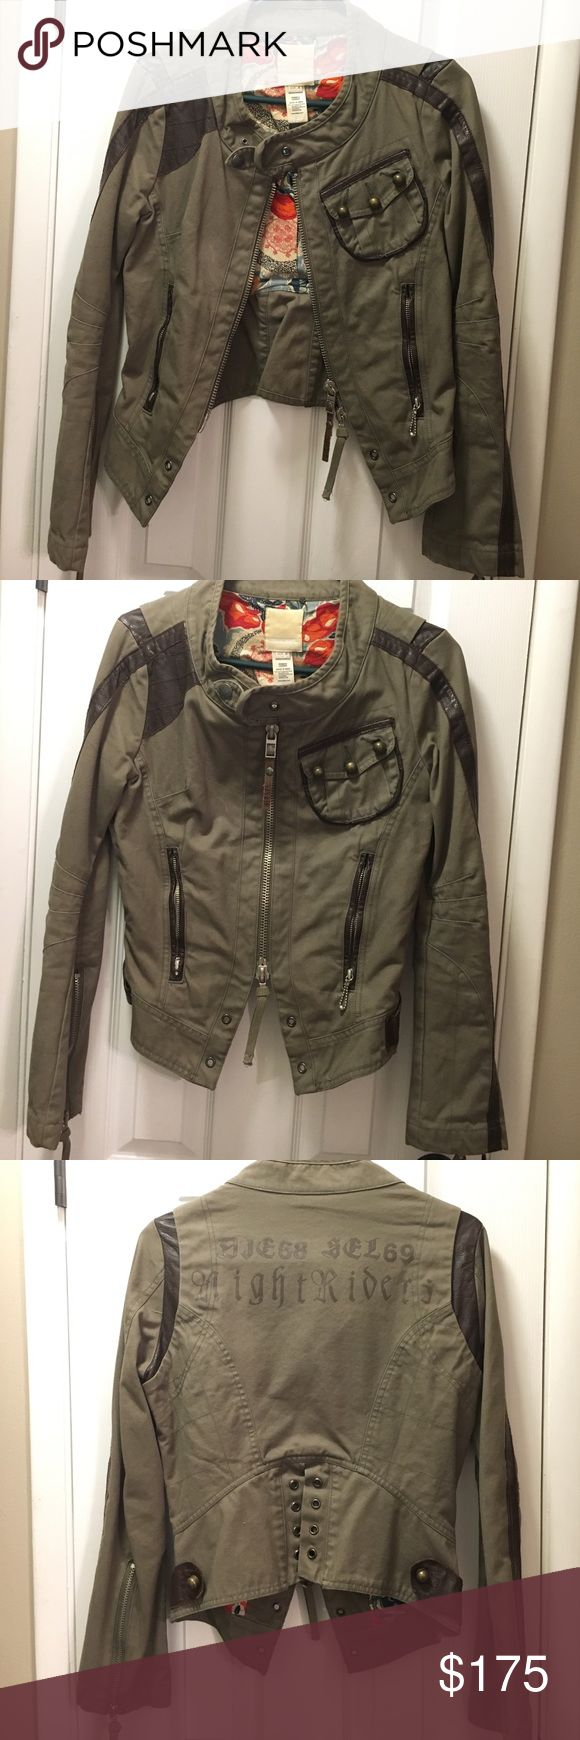 Diesel coat, army green with brown leather. Diesel jacket. Army green with brown leather. Rad floral print inside, zippers on sleeves. Great condition! Diesel Jackets & Coats